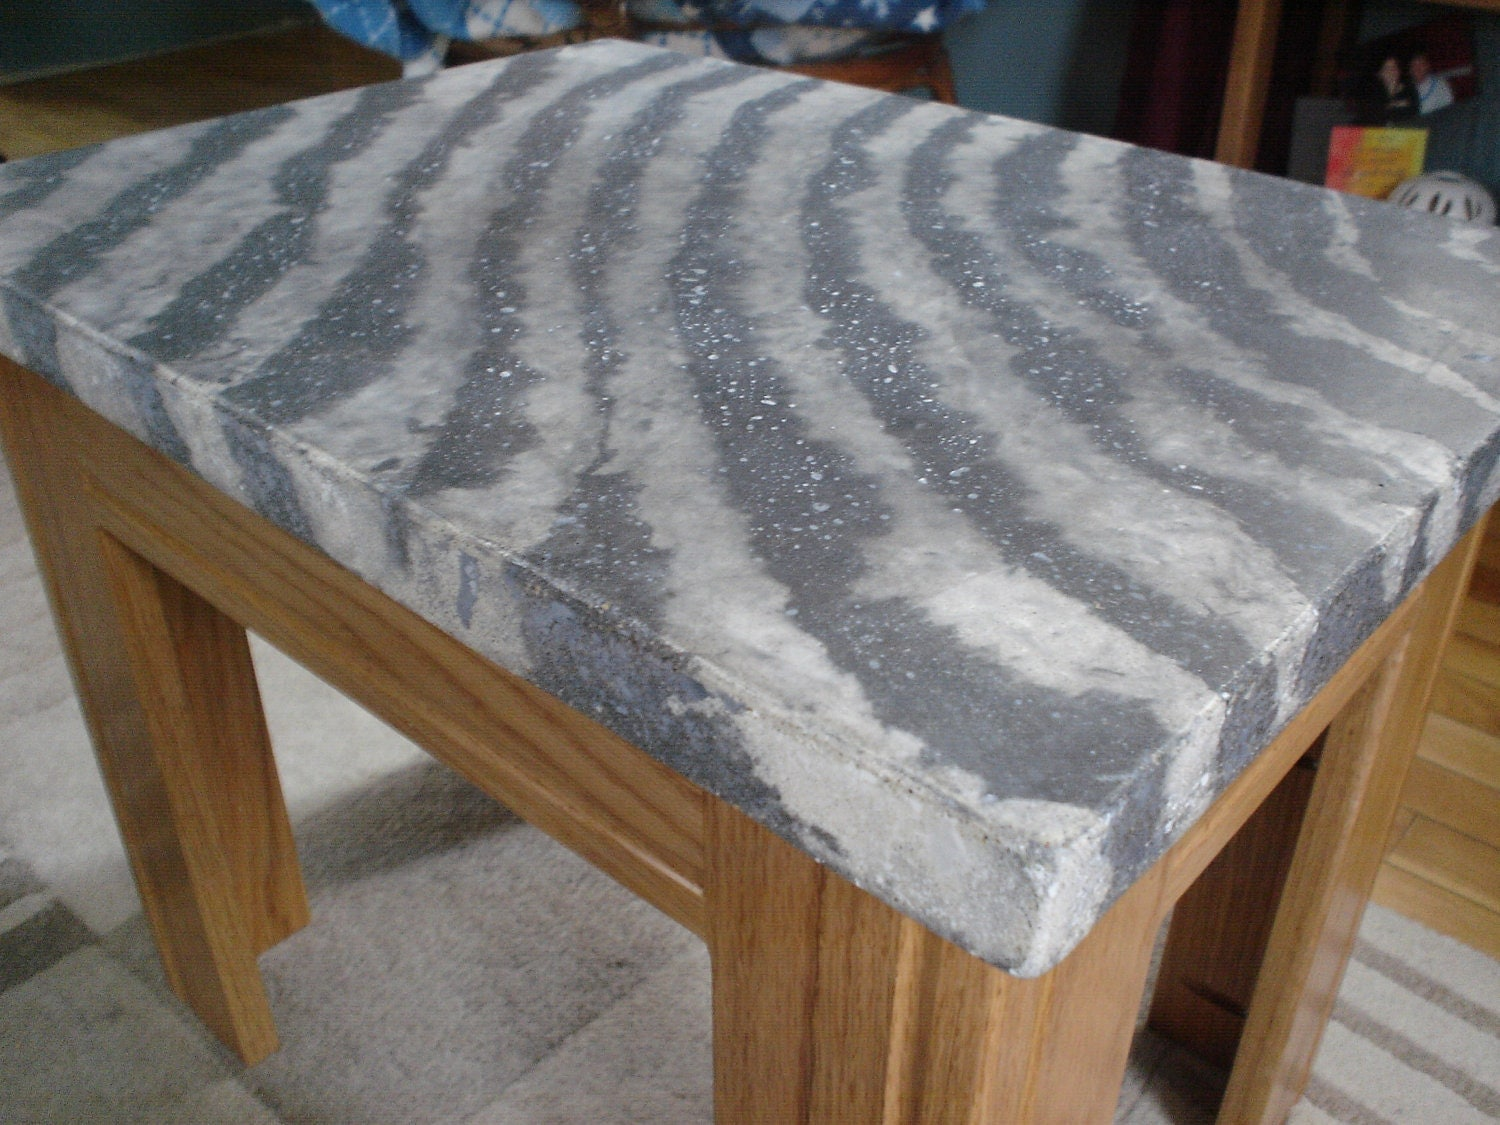 Concrete Table Top Concrete Zebra Print Table Top Only Top